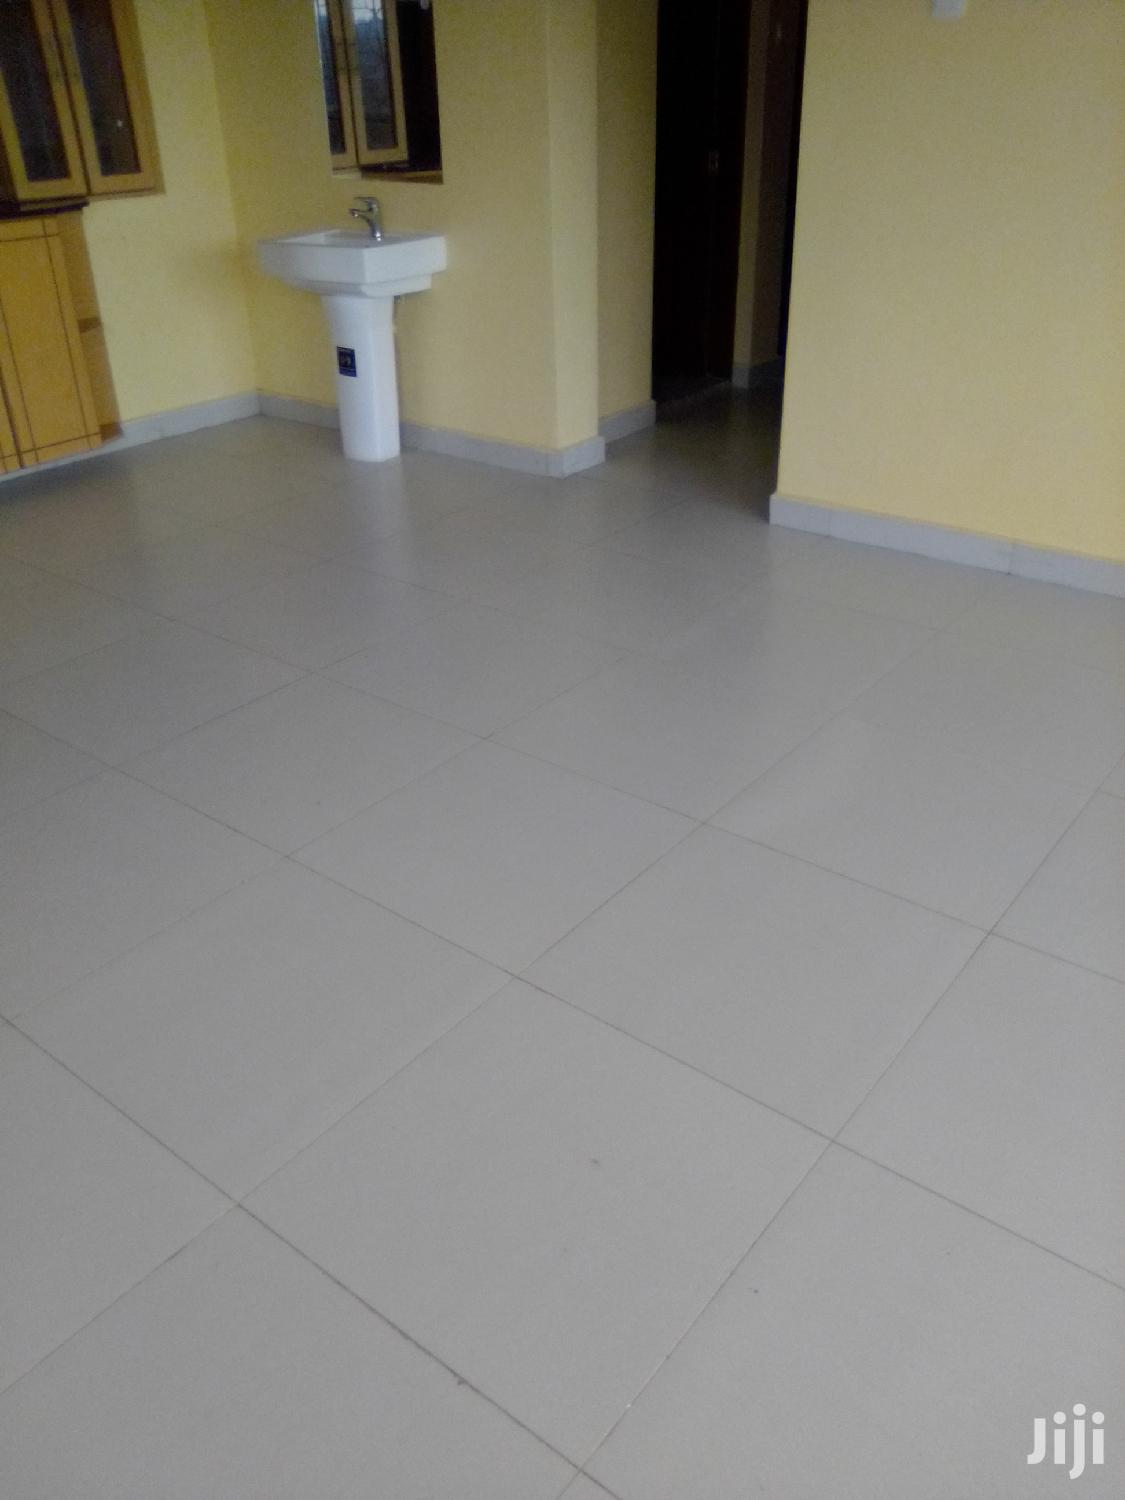 Archive: Spacious Modern 2br Apartment to Let at Stadium Area.